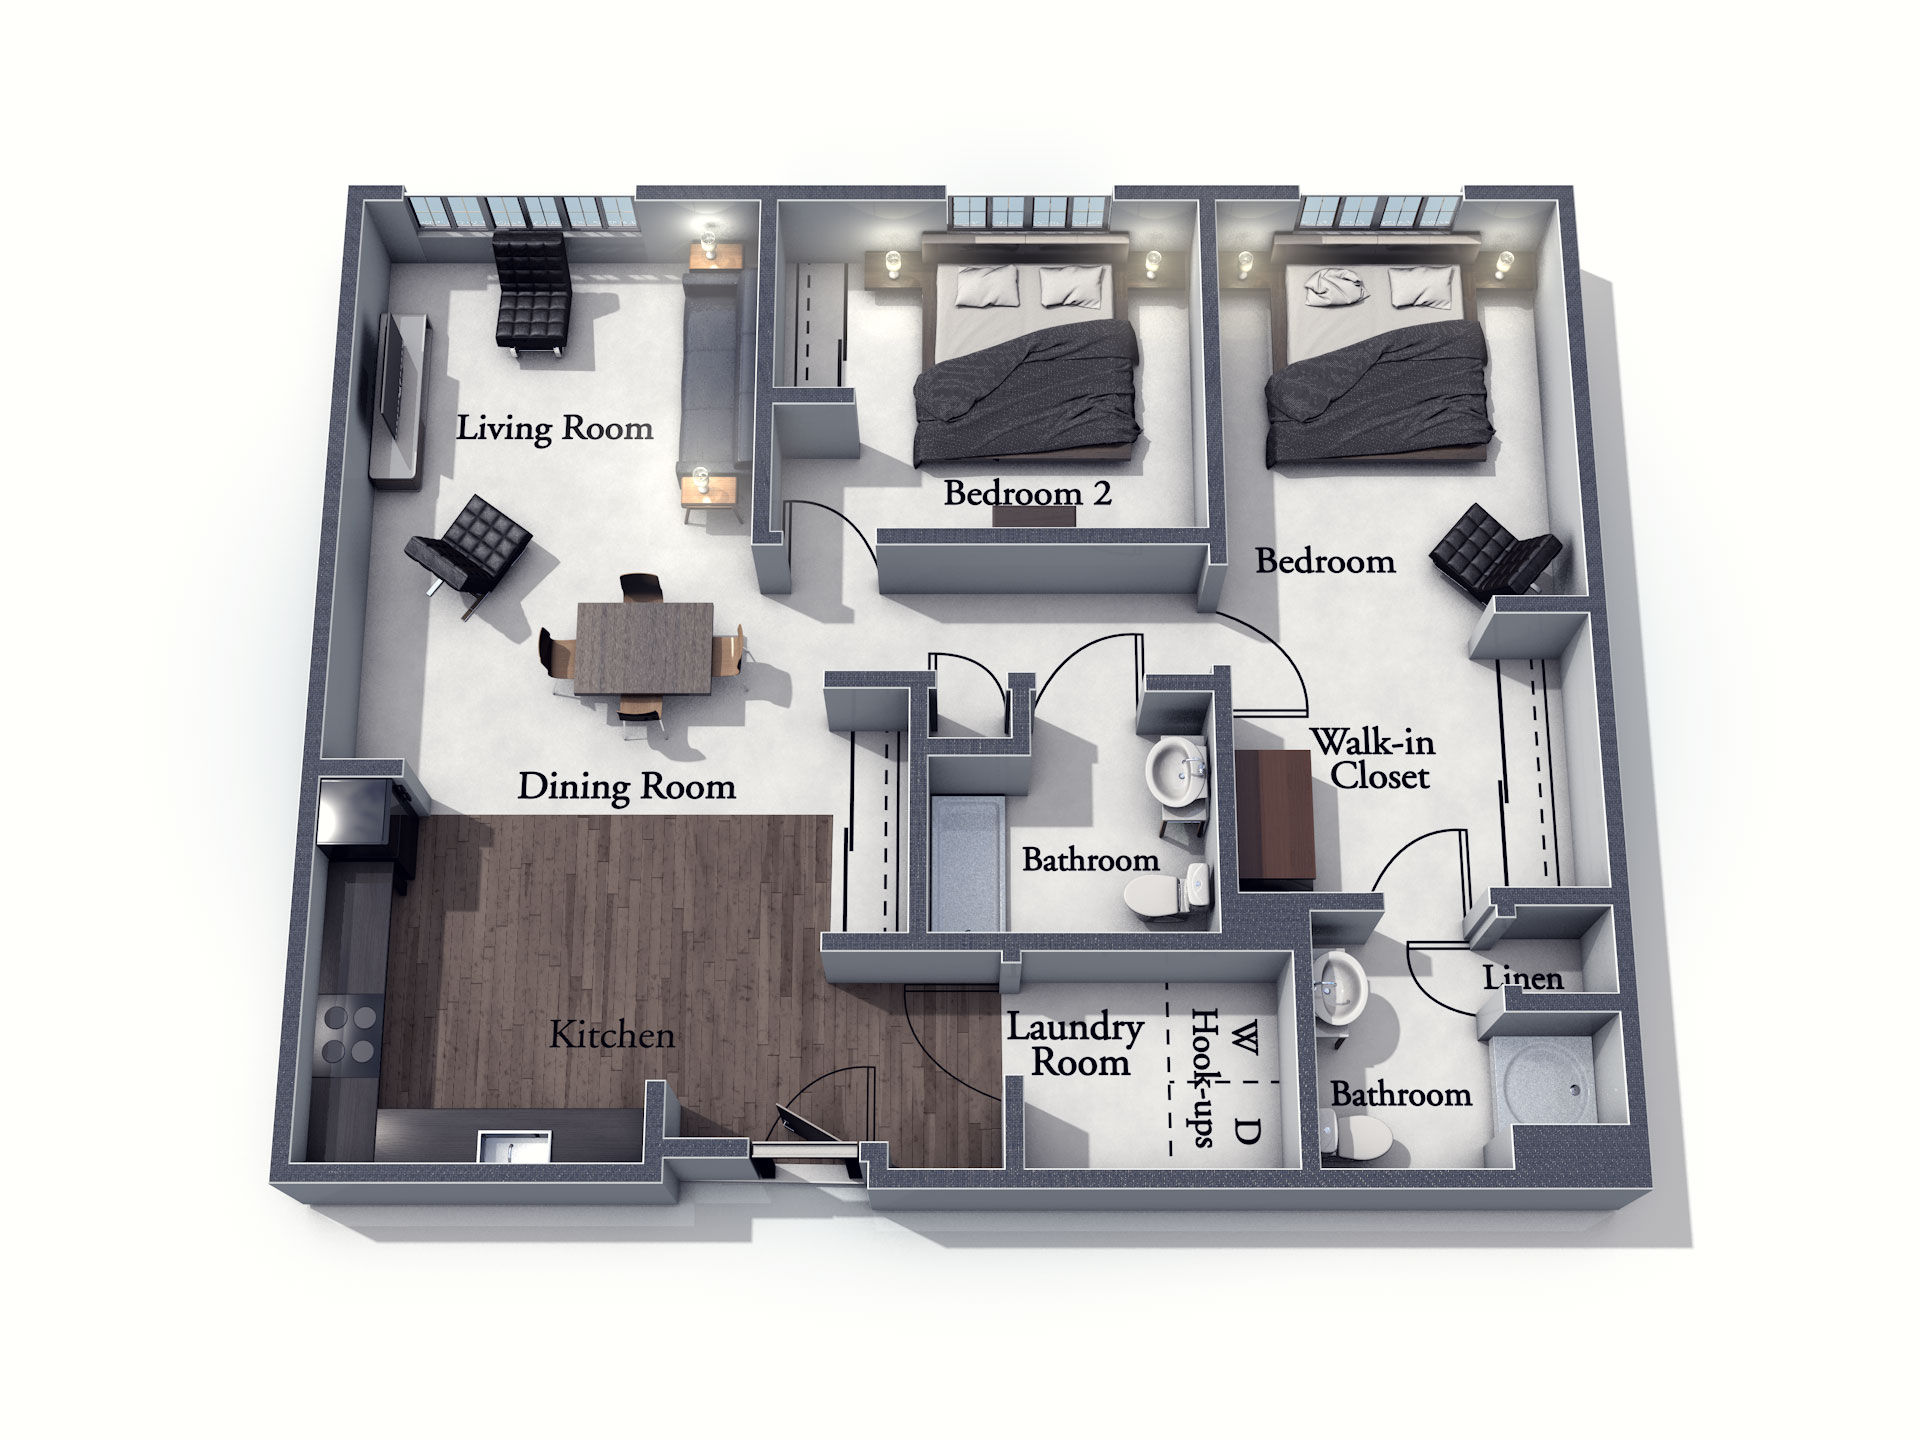 This 3D rendering of the Nottingham living space shows an example of the floor plan layout. Please contact the Summit Pointe Senior Living Community for more information.